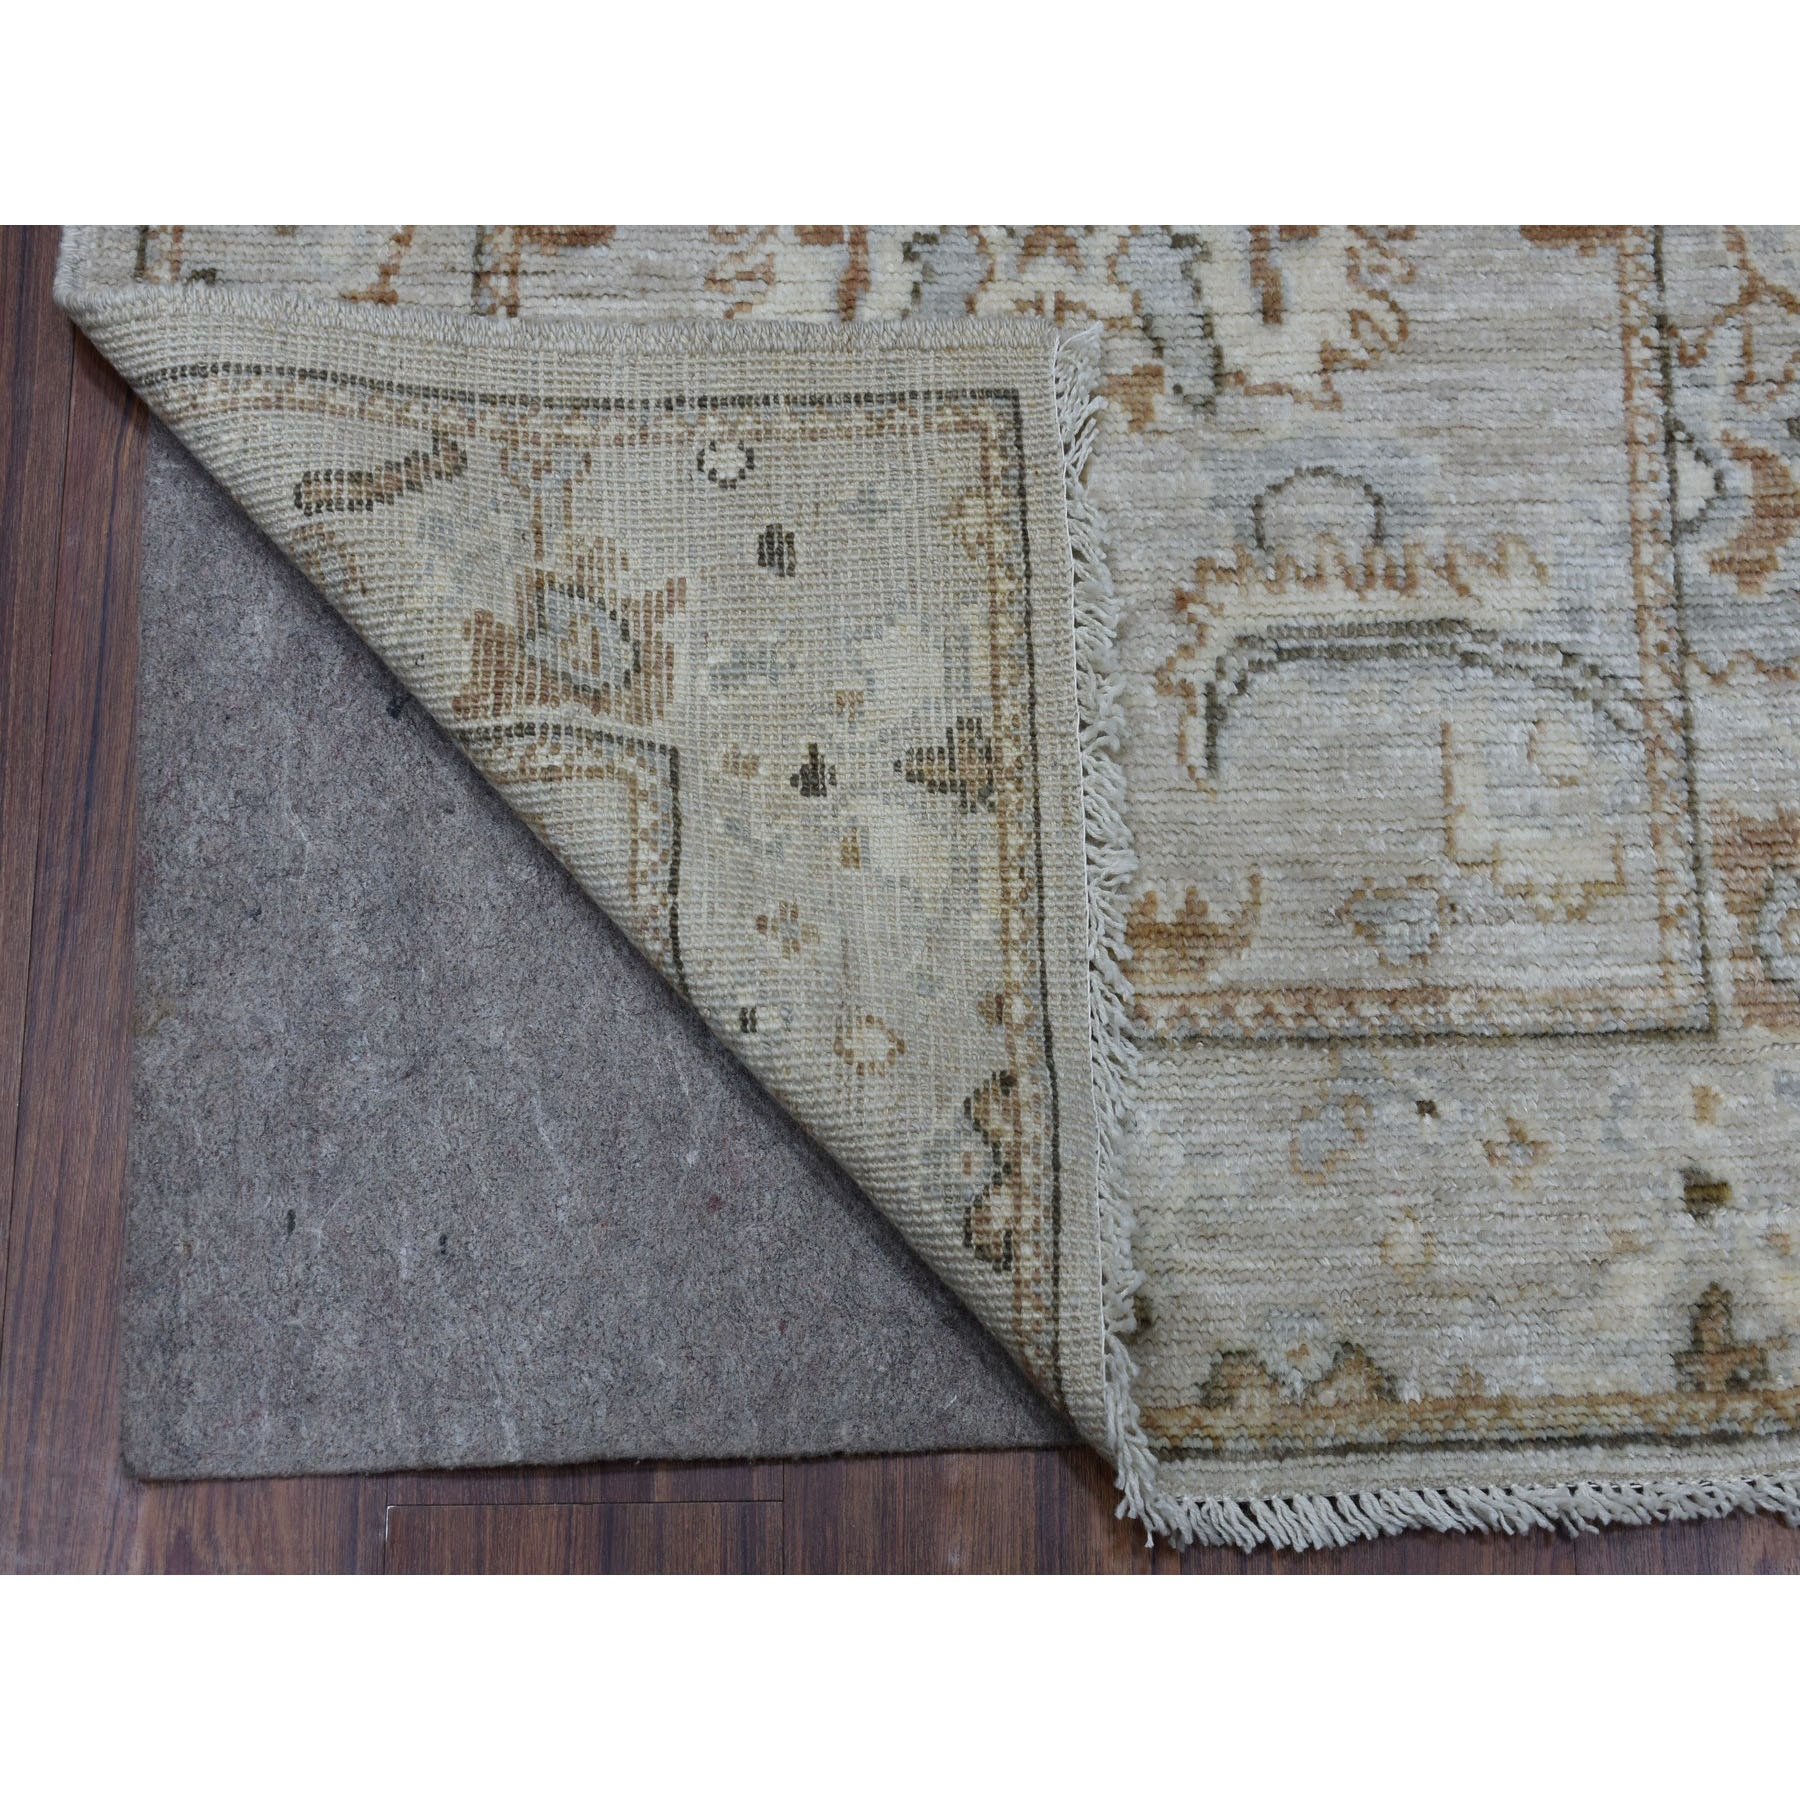 "2'9""x7'10"" Monochromatic Color with Brown Angora Oushak Vibrant Wool Hand Woven Runner Oriental Rug"